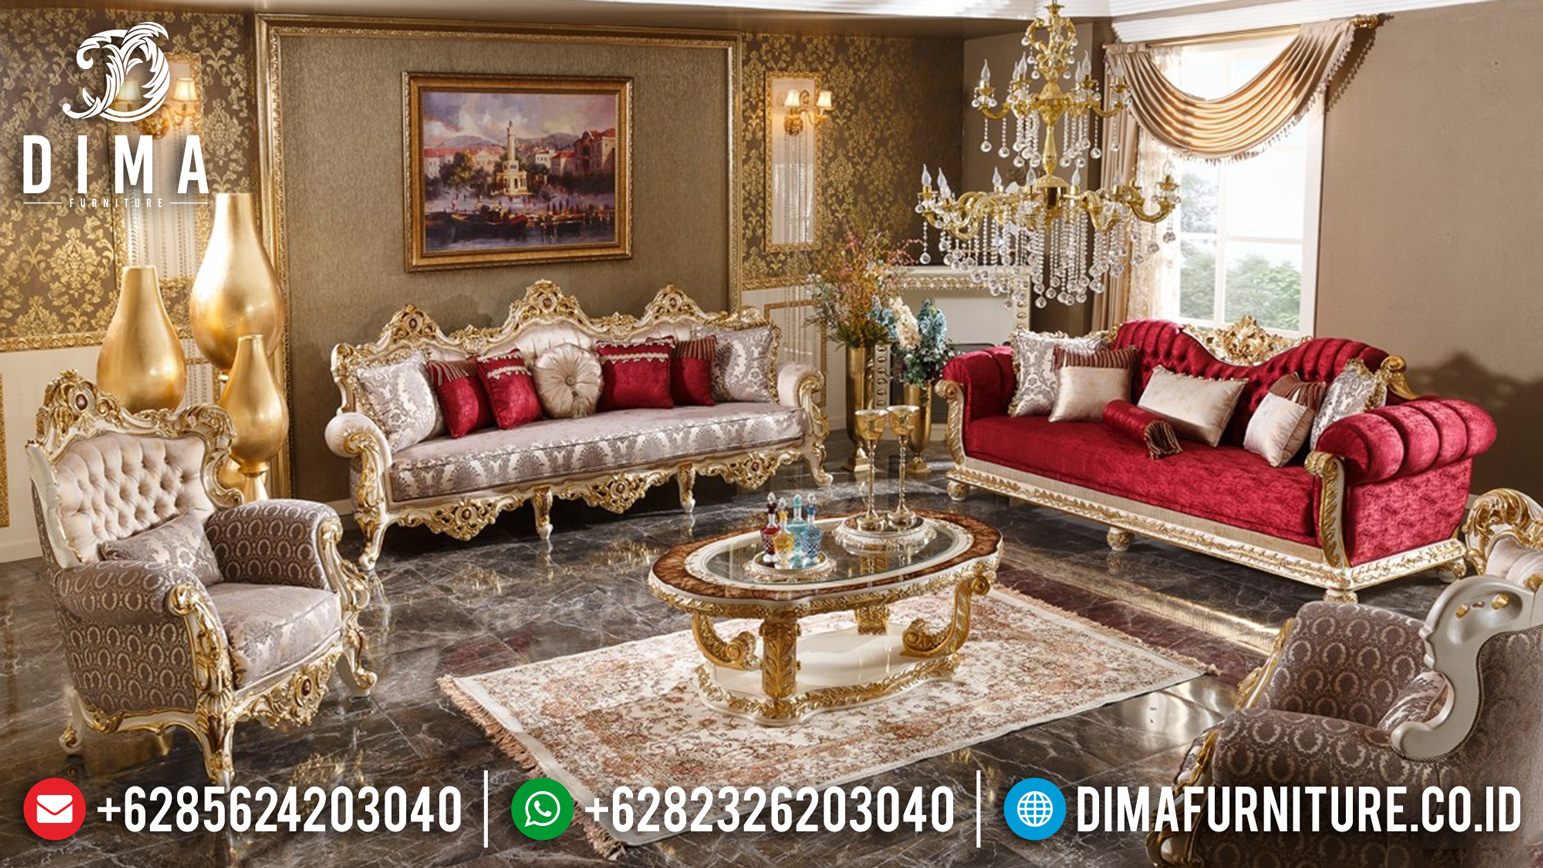 Model Sofa Tamu Jepara 2019-2020 011 Dima Furniture Jepara